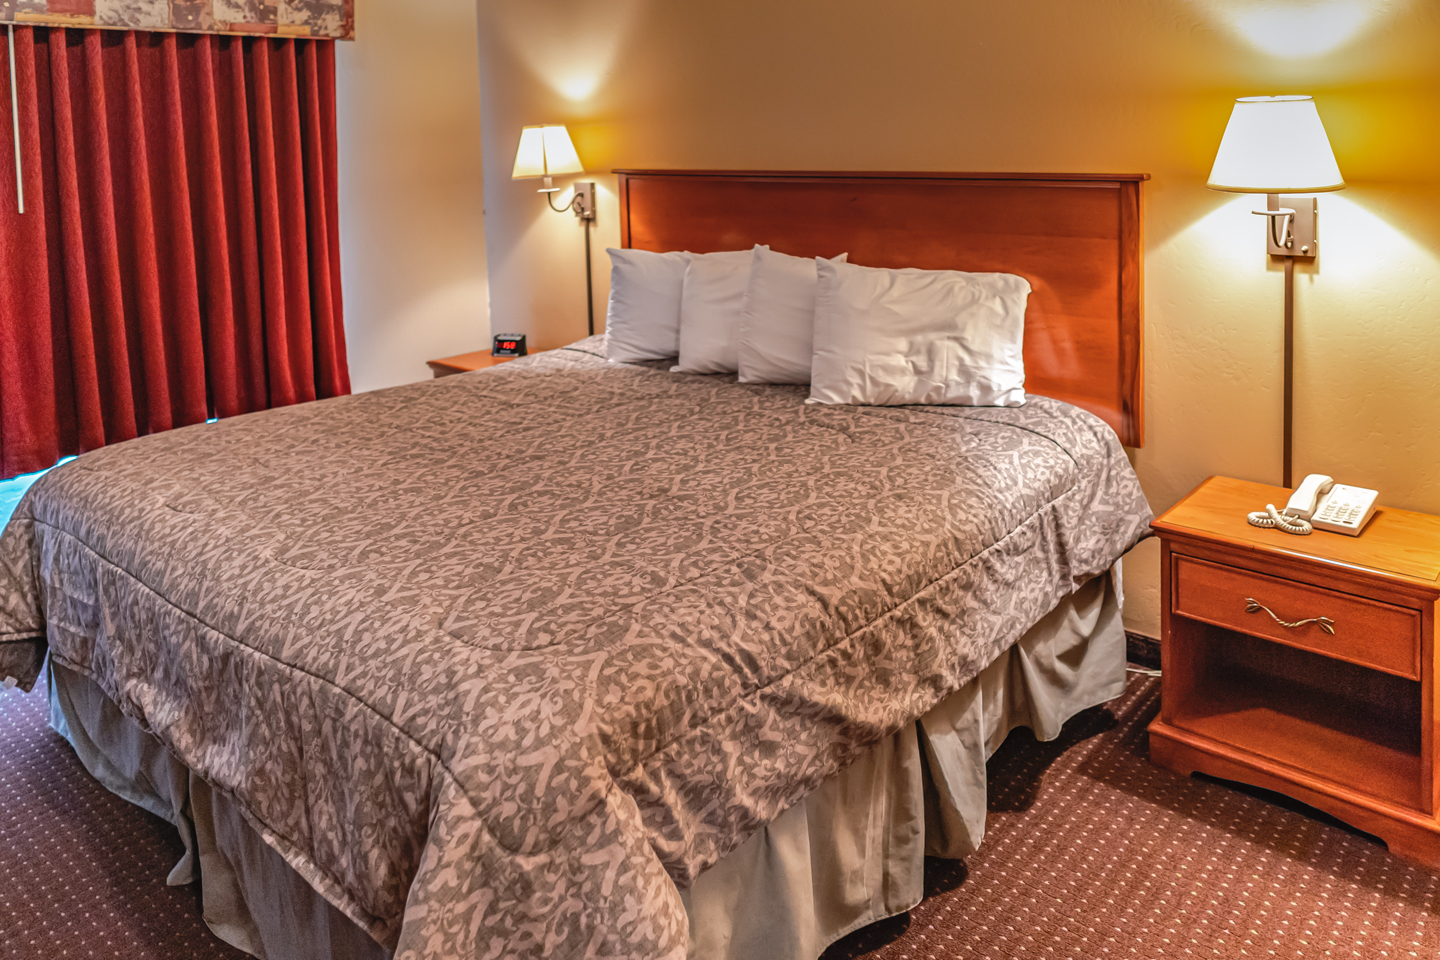 Mole Lake Casino Lodge In Crandon Wisconsin Offers The Best Hotel Deals On King Suite Rooms